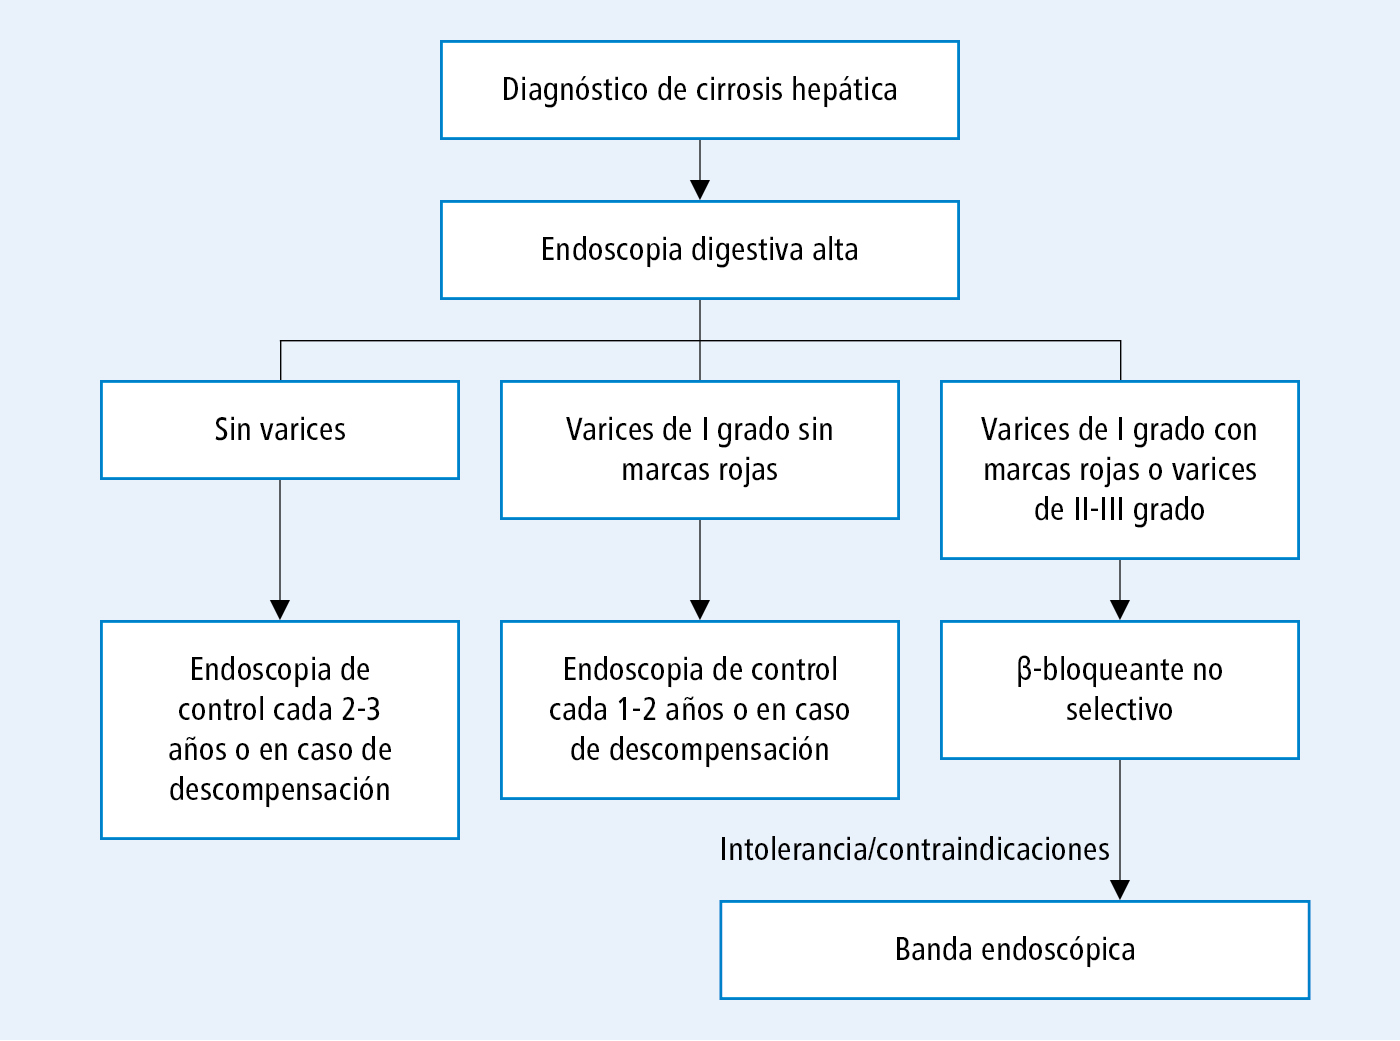 diabetes y daño hepático